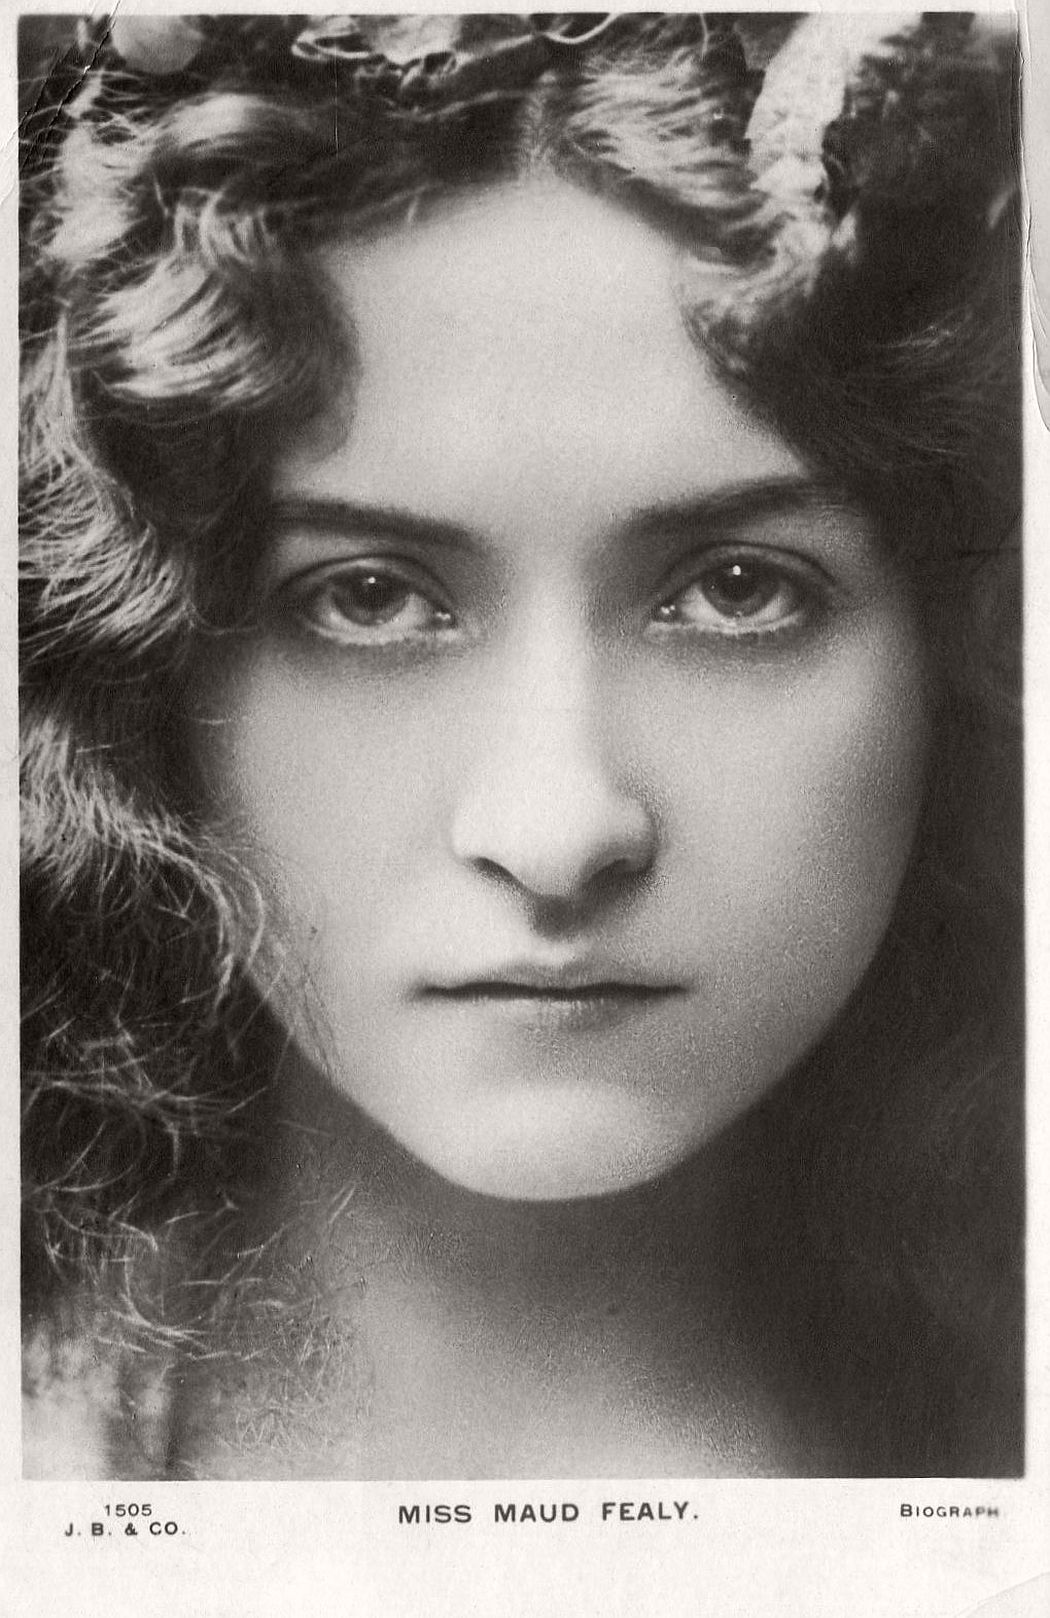 Vintage Retro Postcards of actress Miss Maude Fealy (1900s